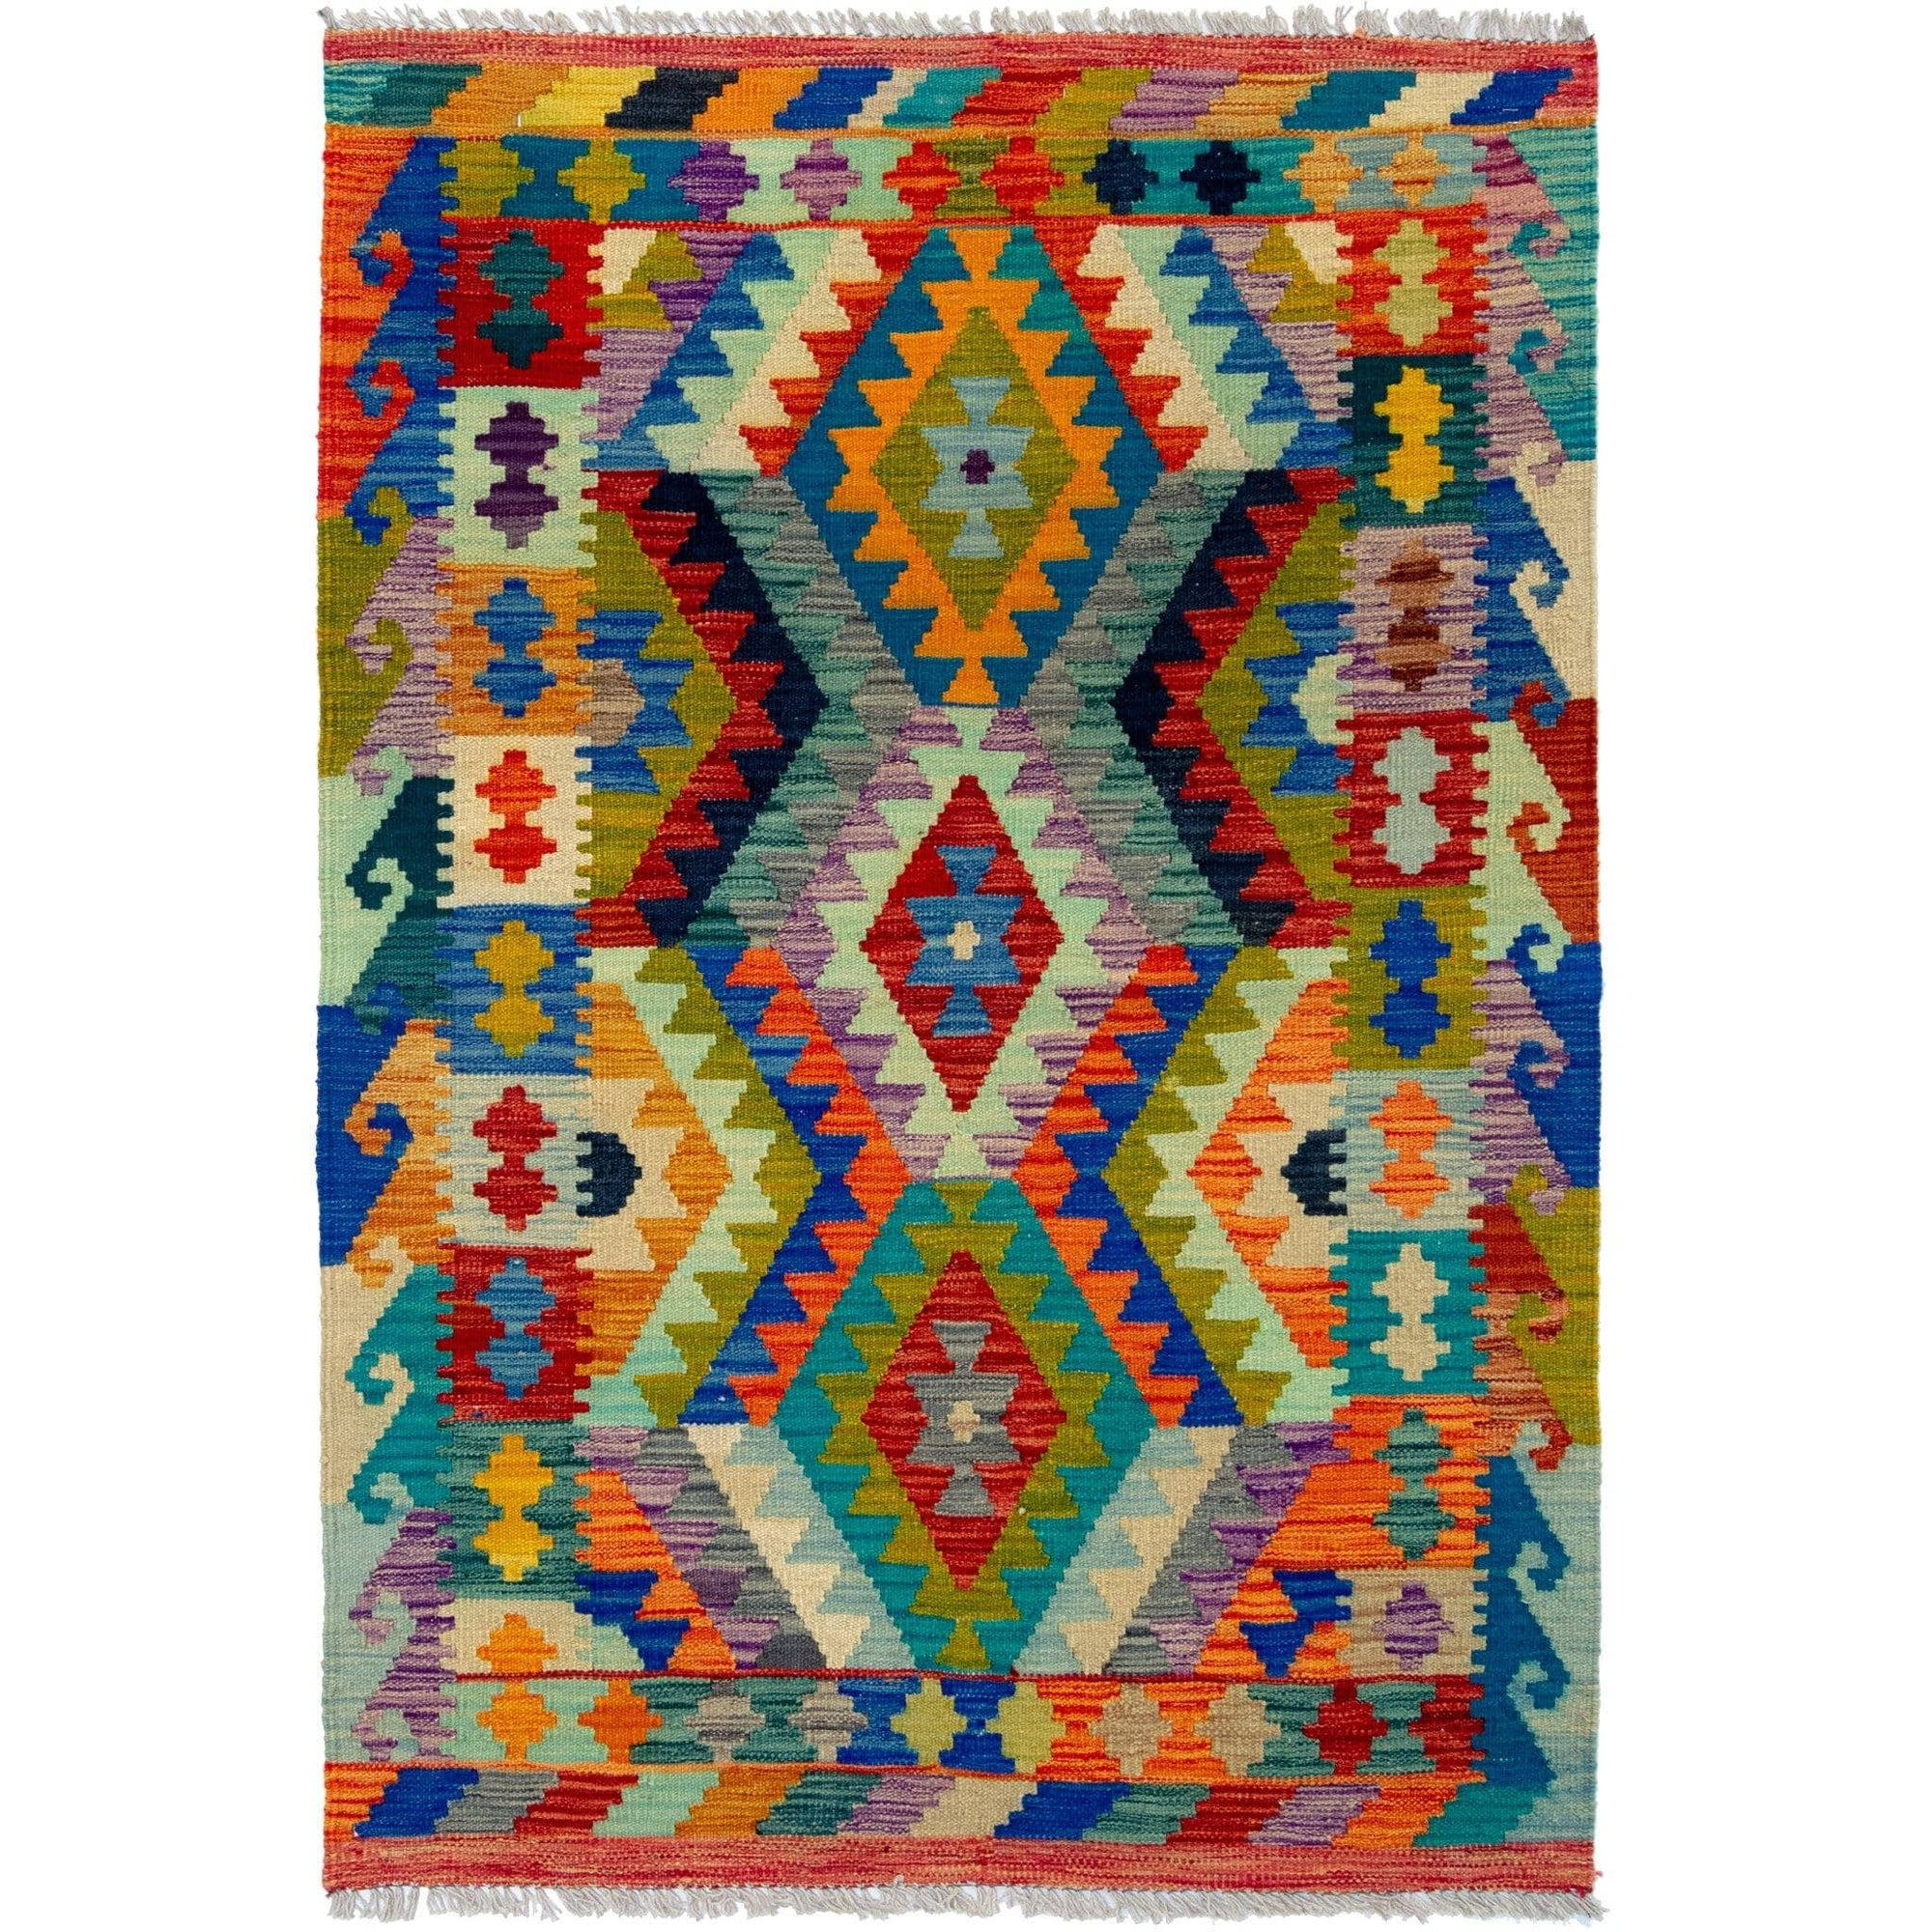 Hand-woven Afghan Chobi Kilim Rug 105cm x 149cm Persian-Rug | House-of-Haghi | NewMarket | Auckland | NZ | Handmade Persian Rugs | Hand Knotted Persian Rugs